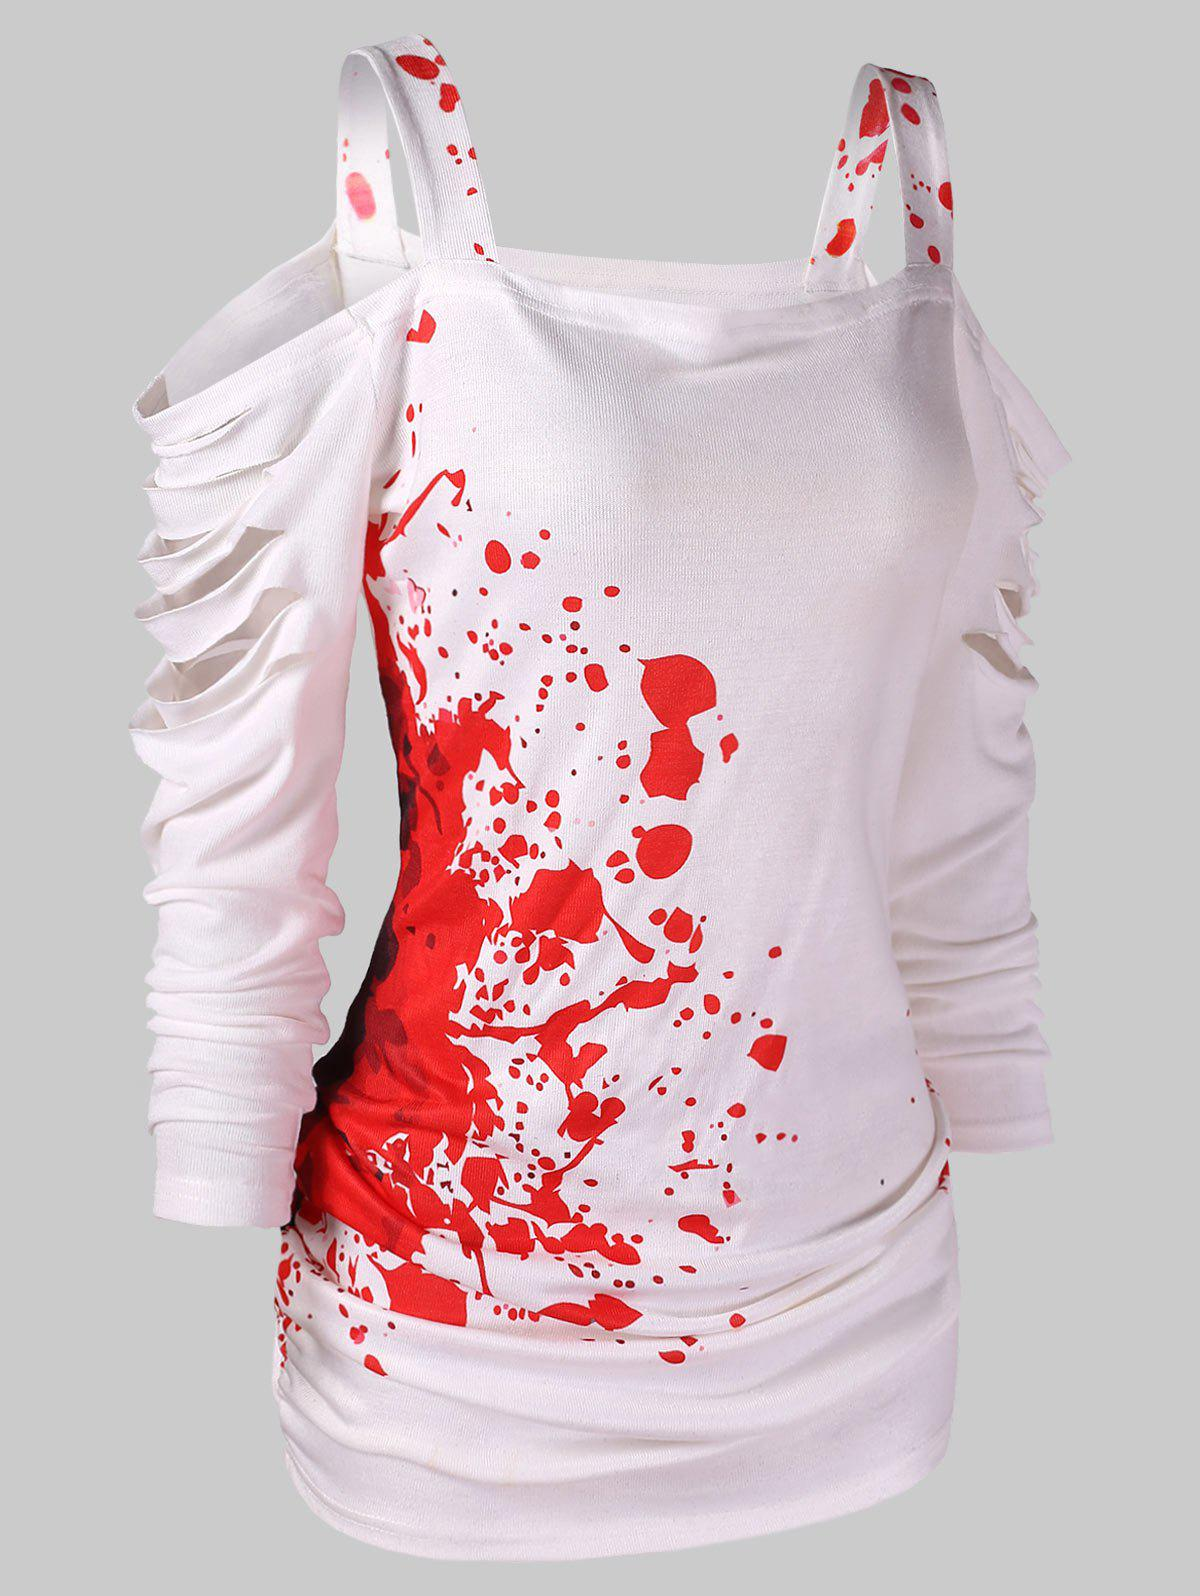 https://www.rosegal.com/t-shirts/halloween-cold-shoulder-blood-splatter-t-shirt-2373773.html?lkid=16127505